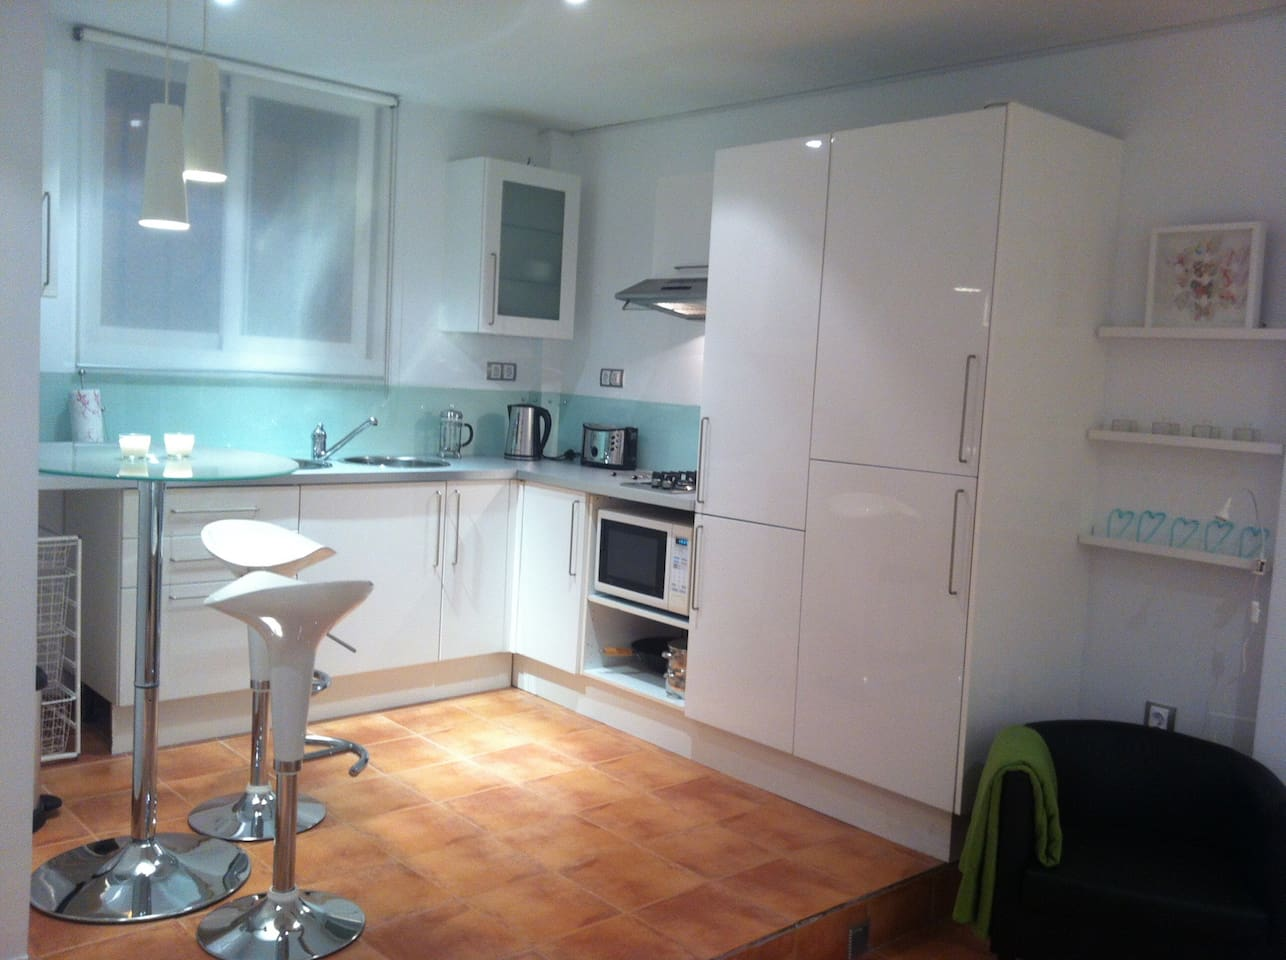 Modern well equipped kitchen with 'breakfast' table and stools